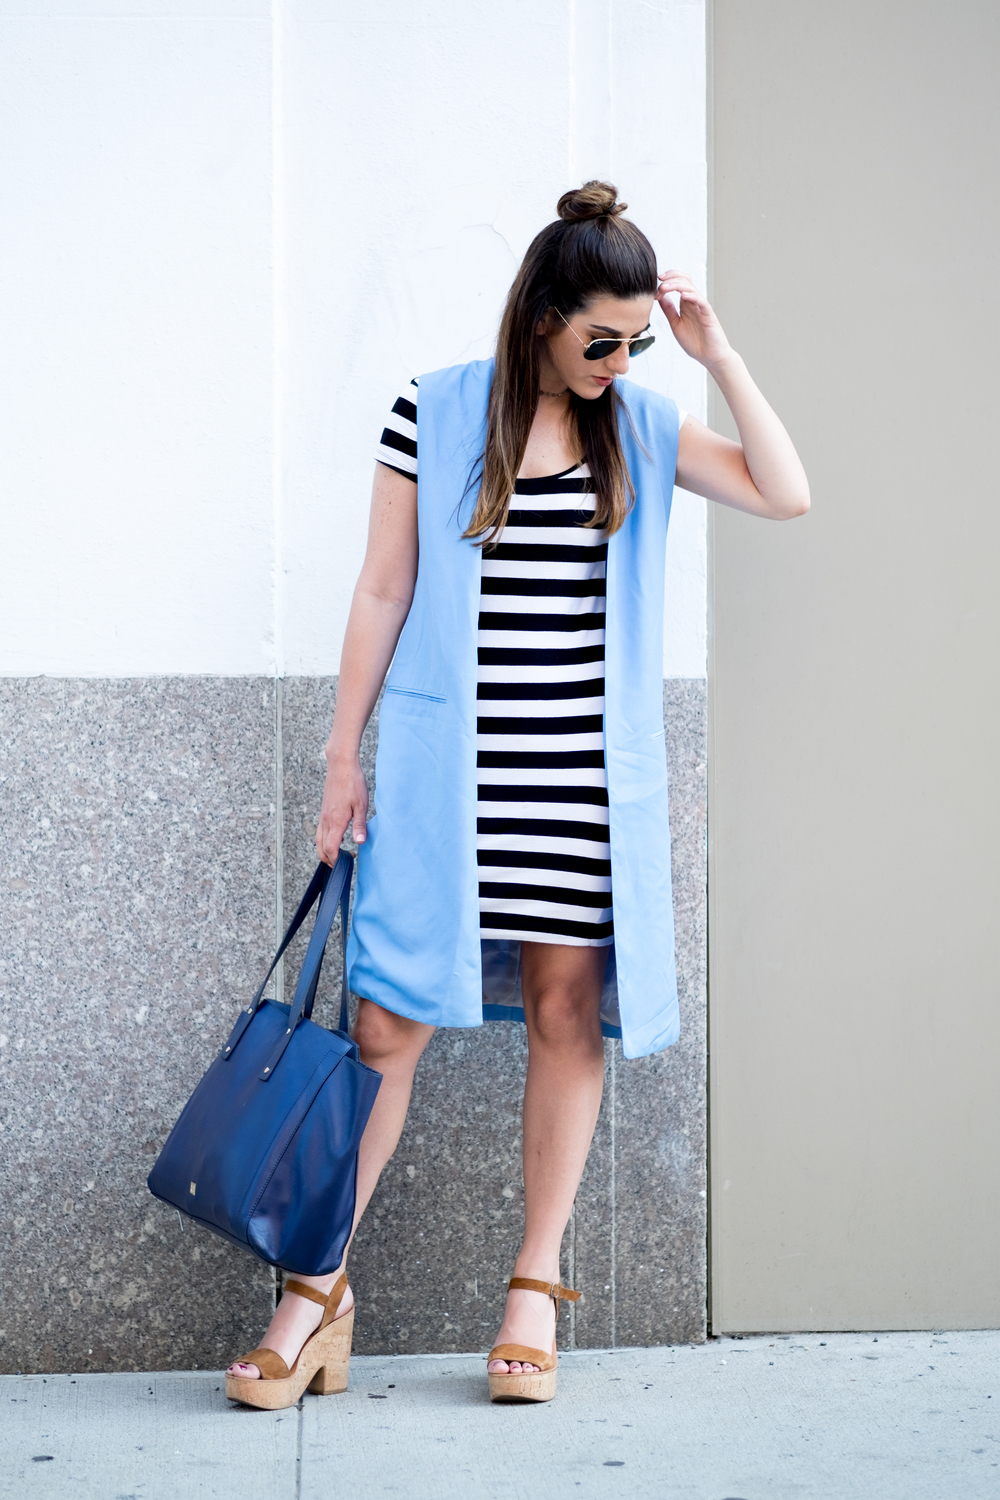 Striped Dress Long Light Blue Vest Louboutins & Love Fashion Blog Esther Santer NYC Street Style Blogger Outfit OOTD Topknot Hair Inspo Girl Women Wedges Dolce Vita Bag Ivanka Trump Soho Tote Aviator Ray-Ban Sunglasses Photoshoot Choker Trendy Summer.jpg